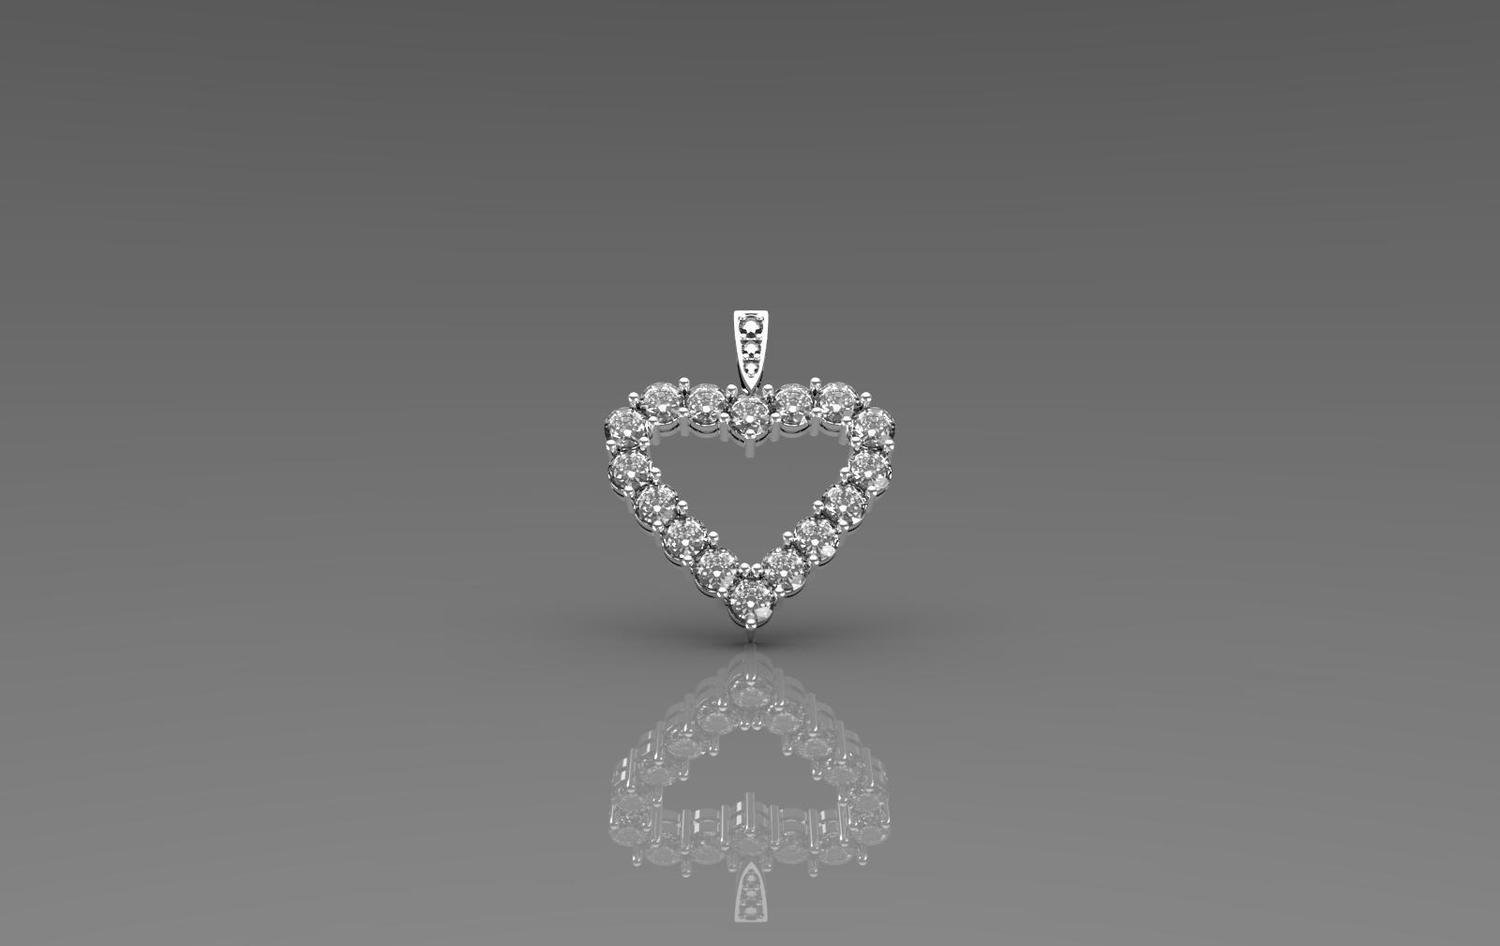 3D Jewelry Model of Heart Pendant with Diamonds